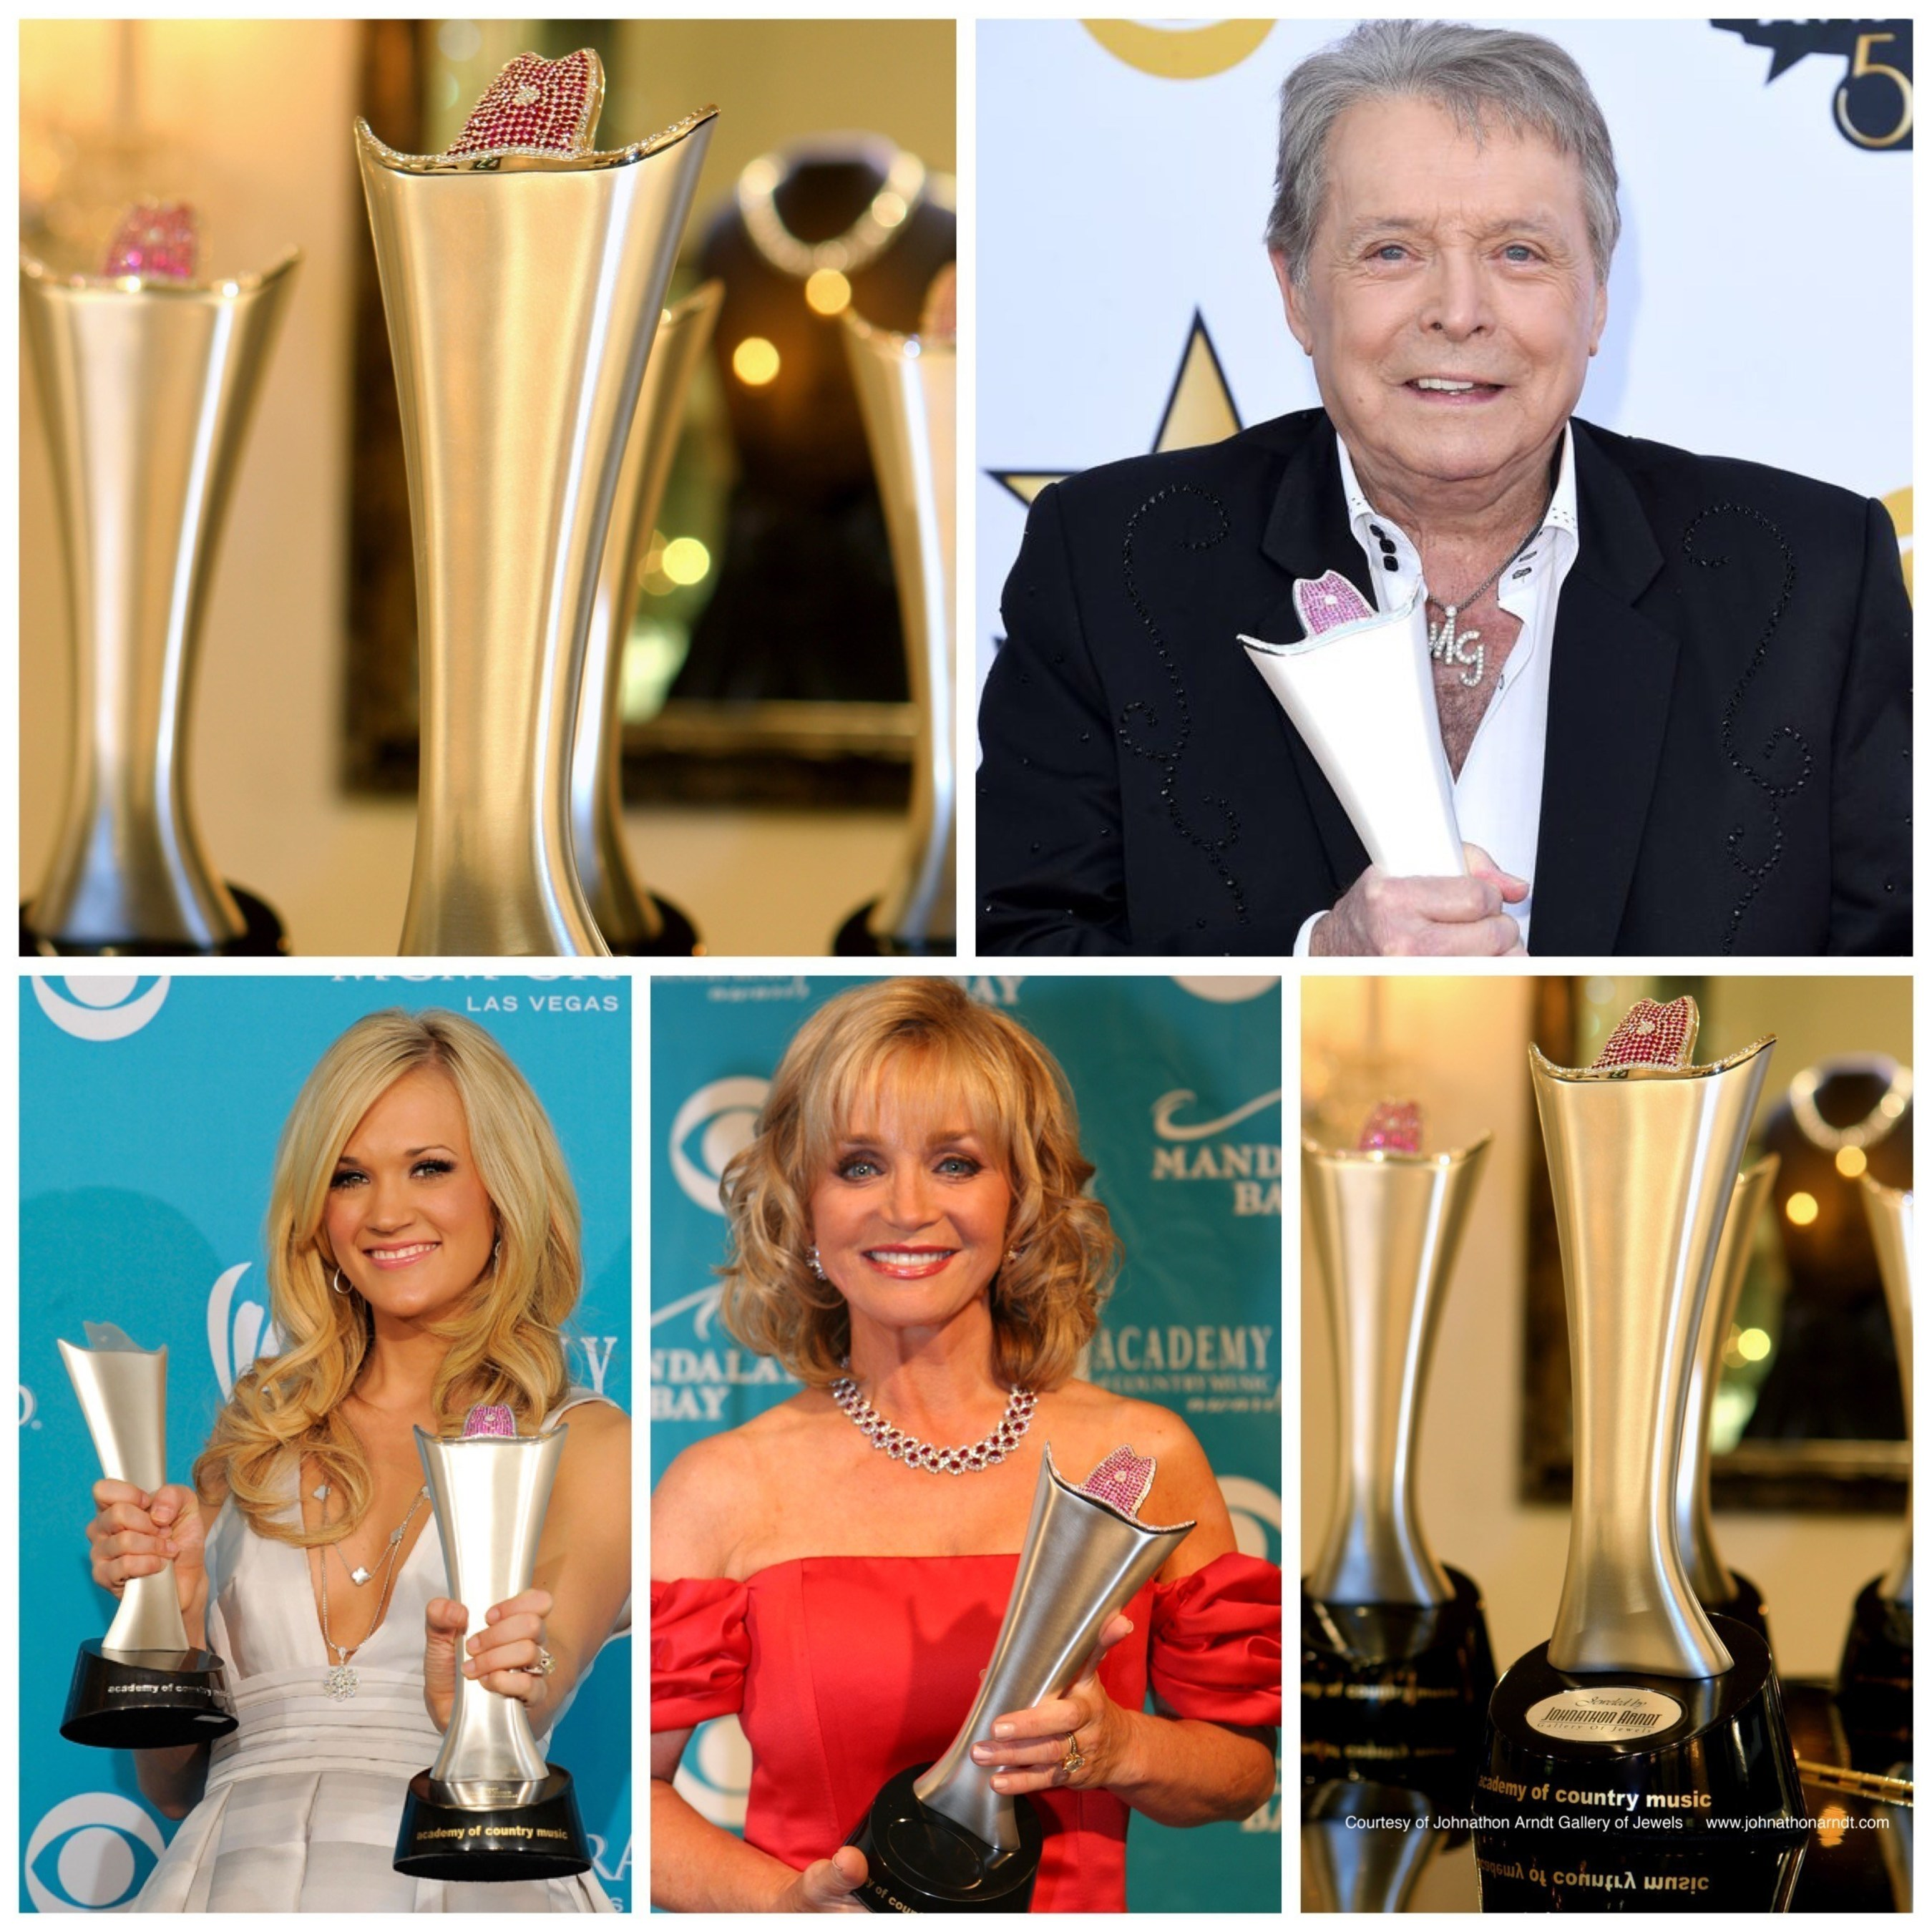 ACM Presents: Superstar Duets' Airing May 15, 2015 on CBS Featuring The Academy of Country Music Triple Crown Award, Jeweled and Designed by Johnathon Arndt presented to